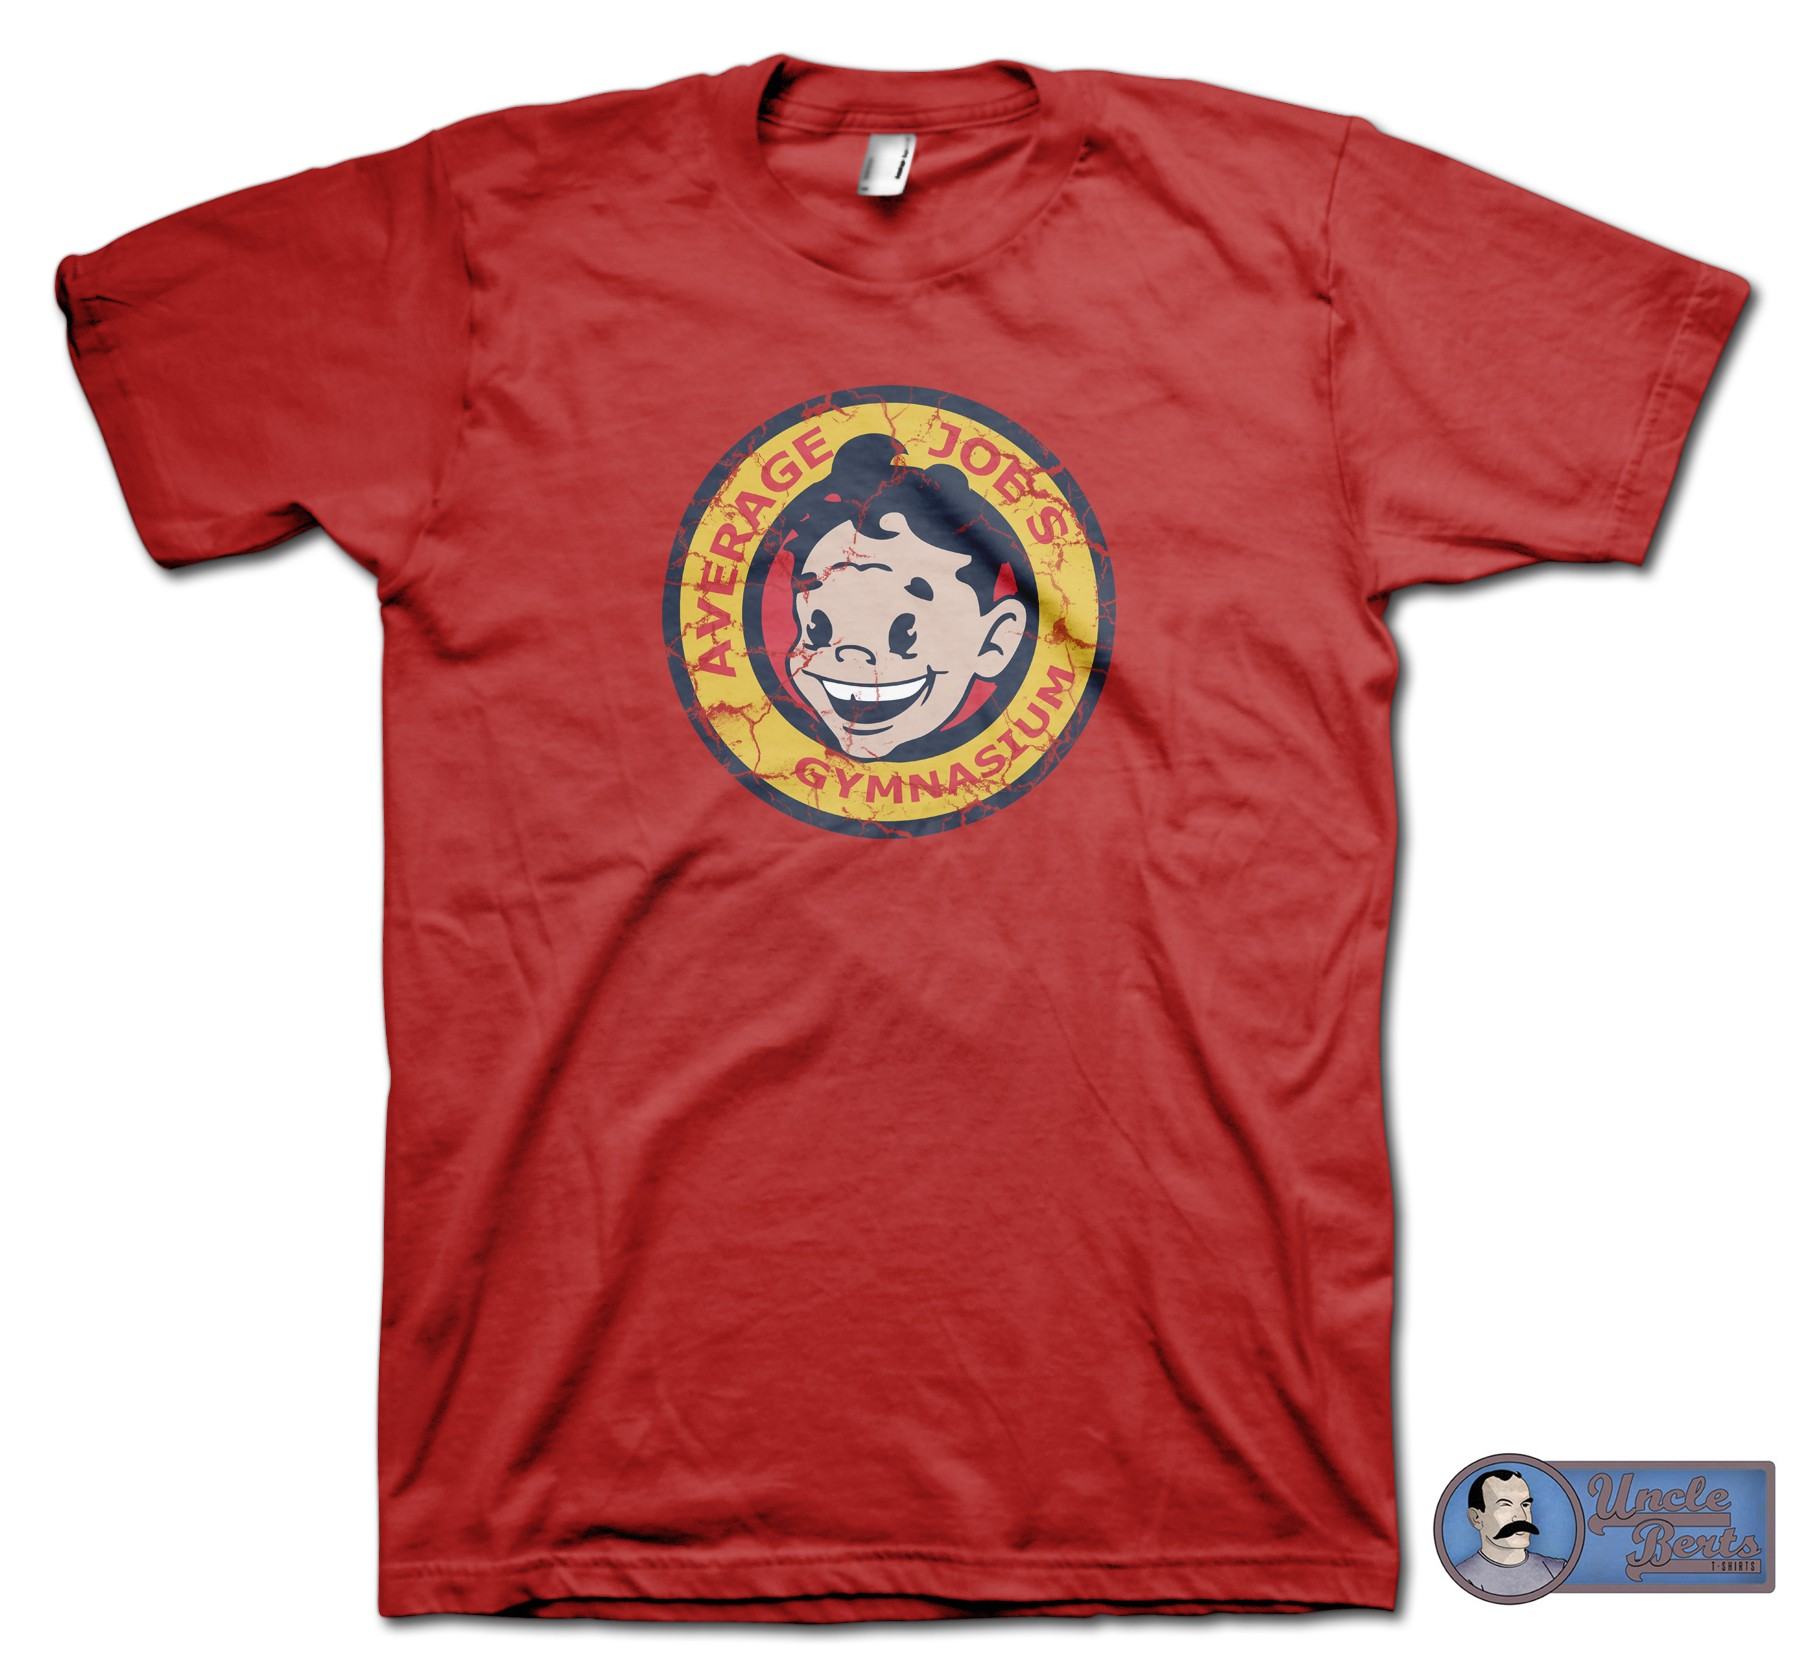 Dodgeball (2004) Inspired Average Joe's T-Shirt